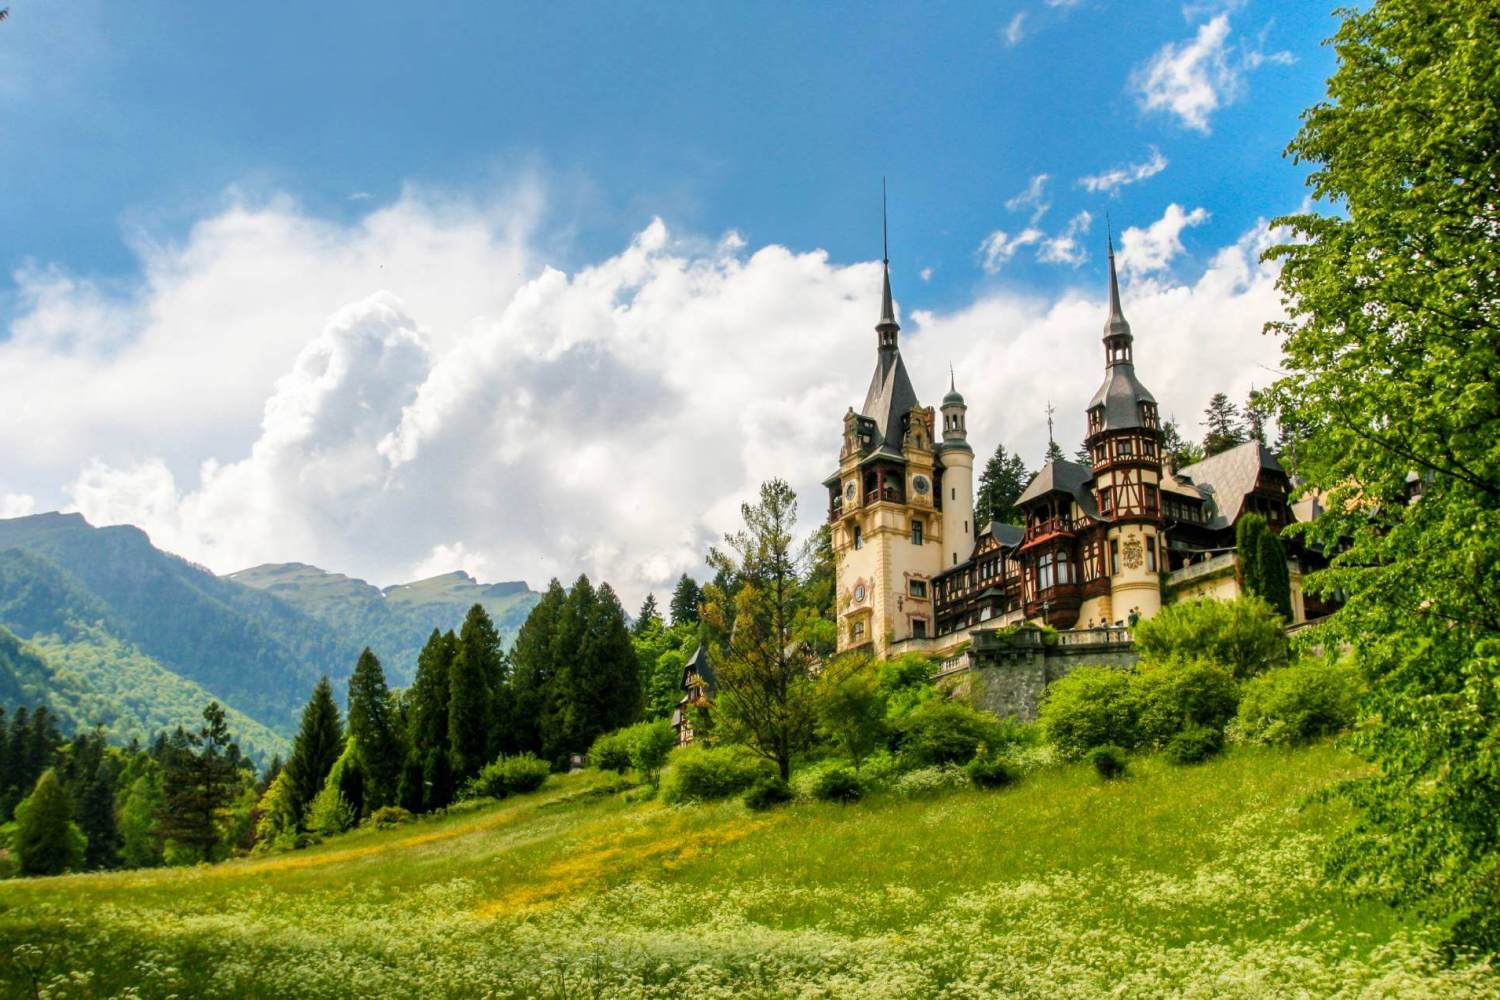 Two Castles in One Day Tour